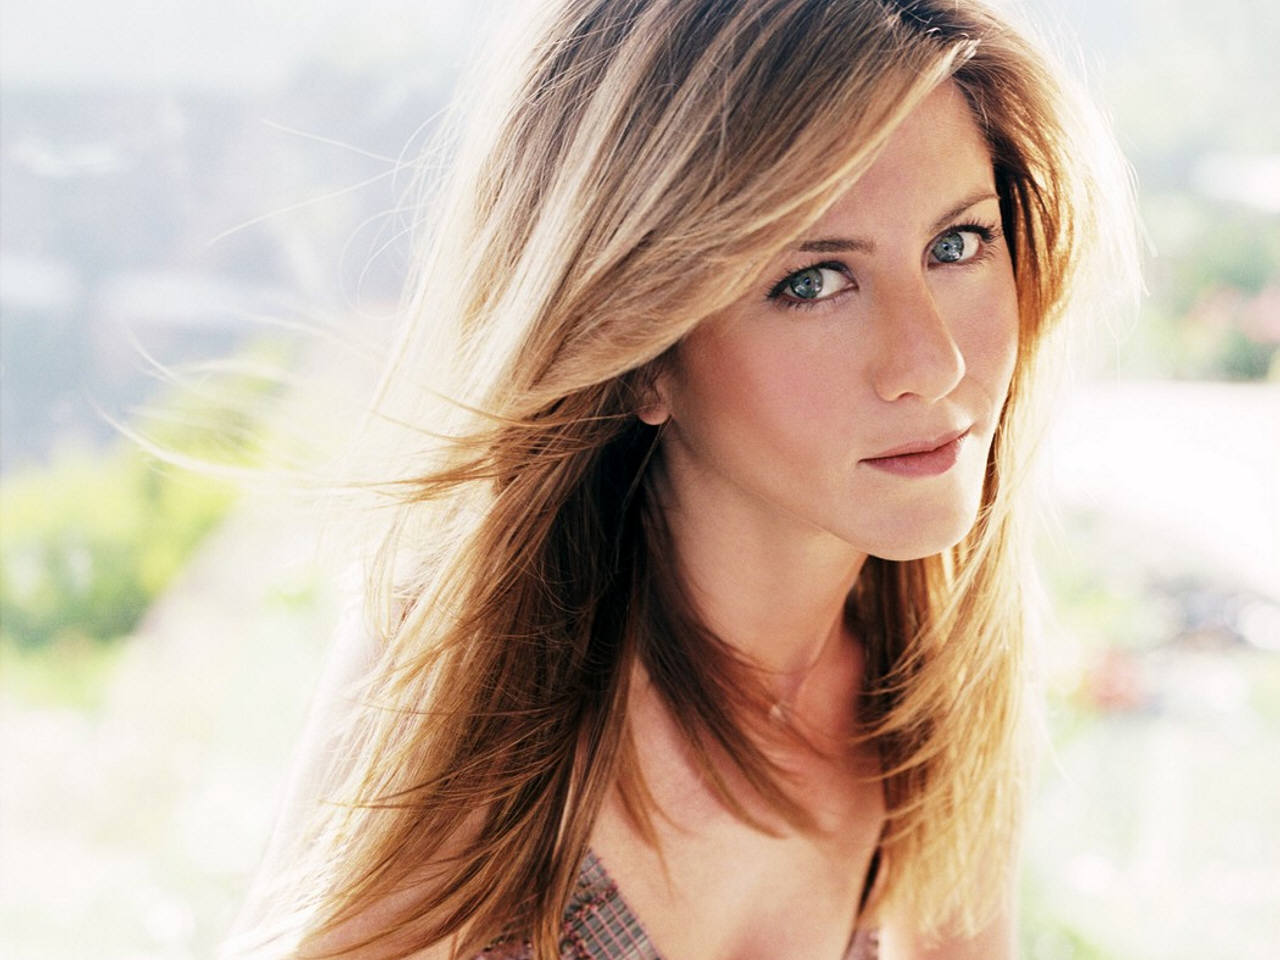 1360x768 Jennifer Aniston Eye Images Desktop Laptop HD Wallpaper